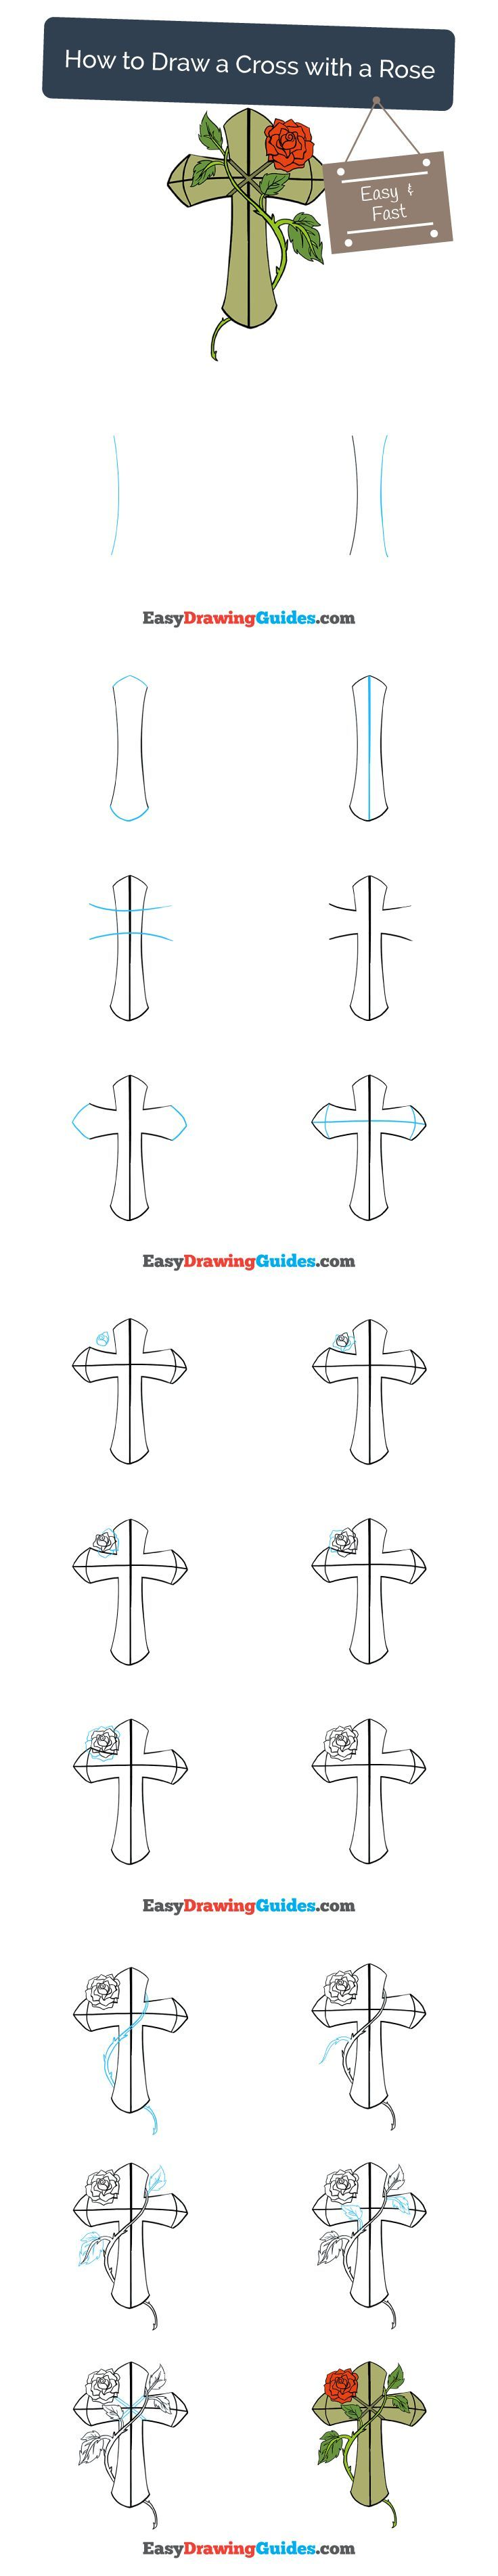 Best 25 easy to draw rose ideas on pinterest easy for How to draw a rose step by step for beginners